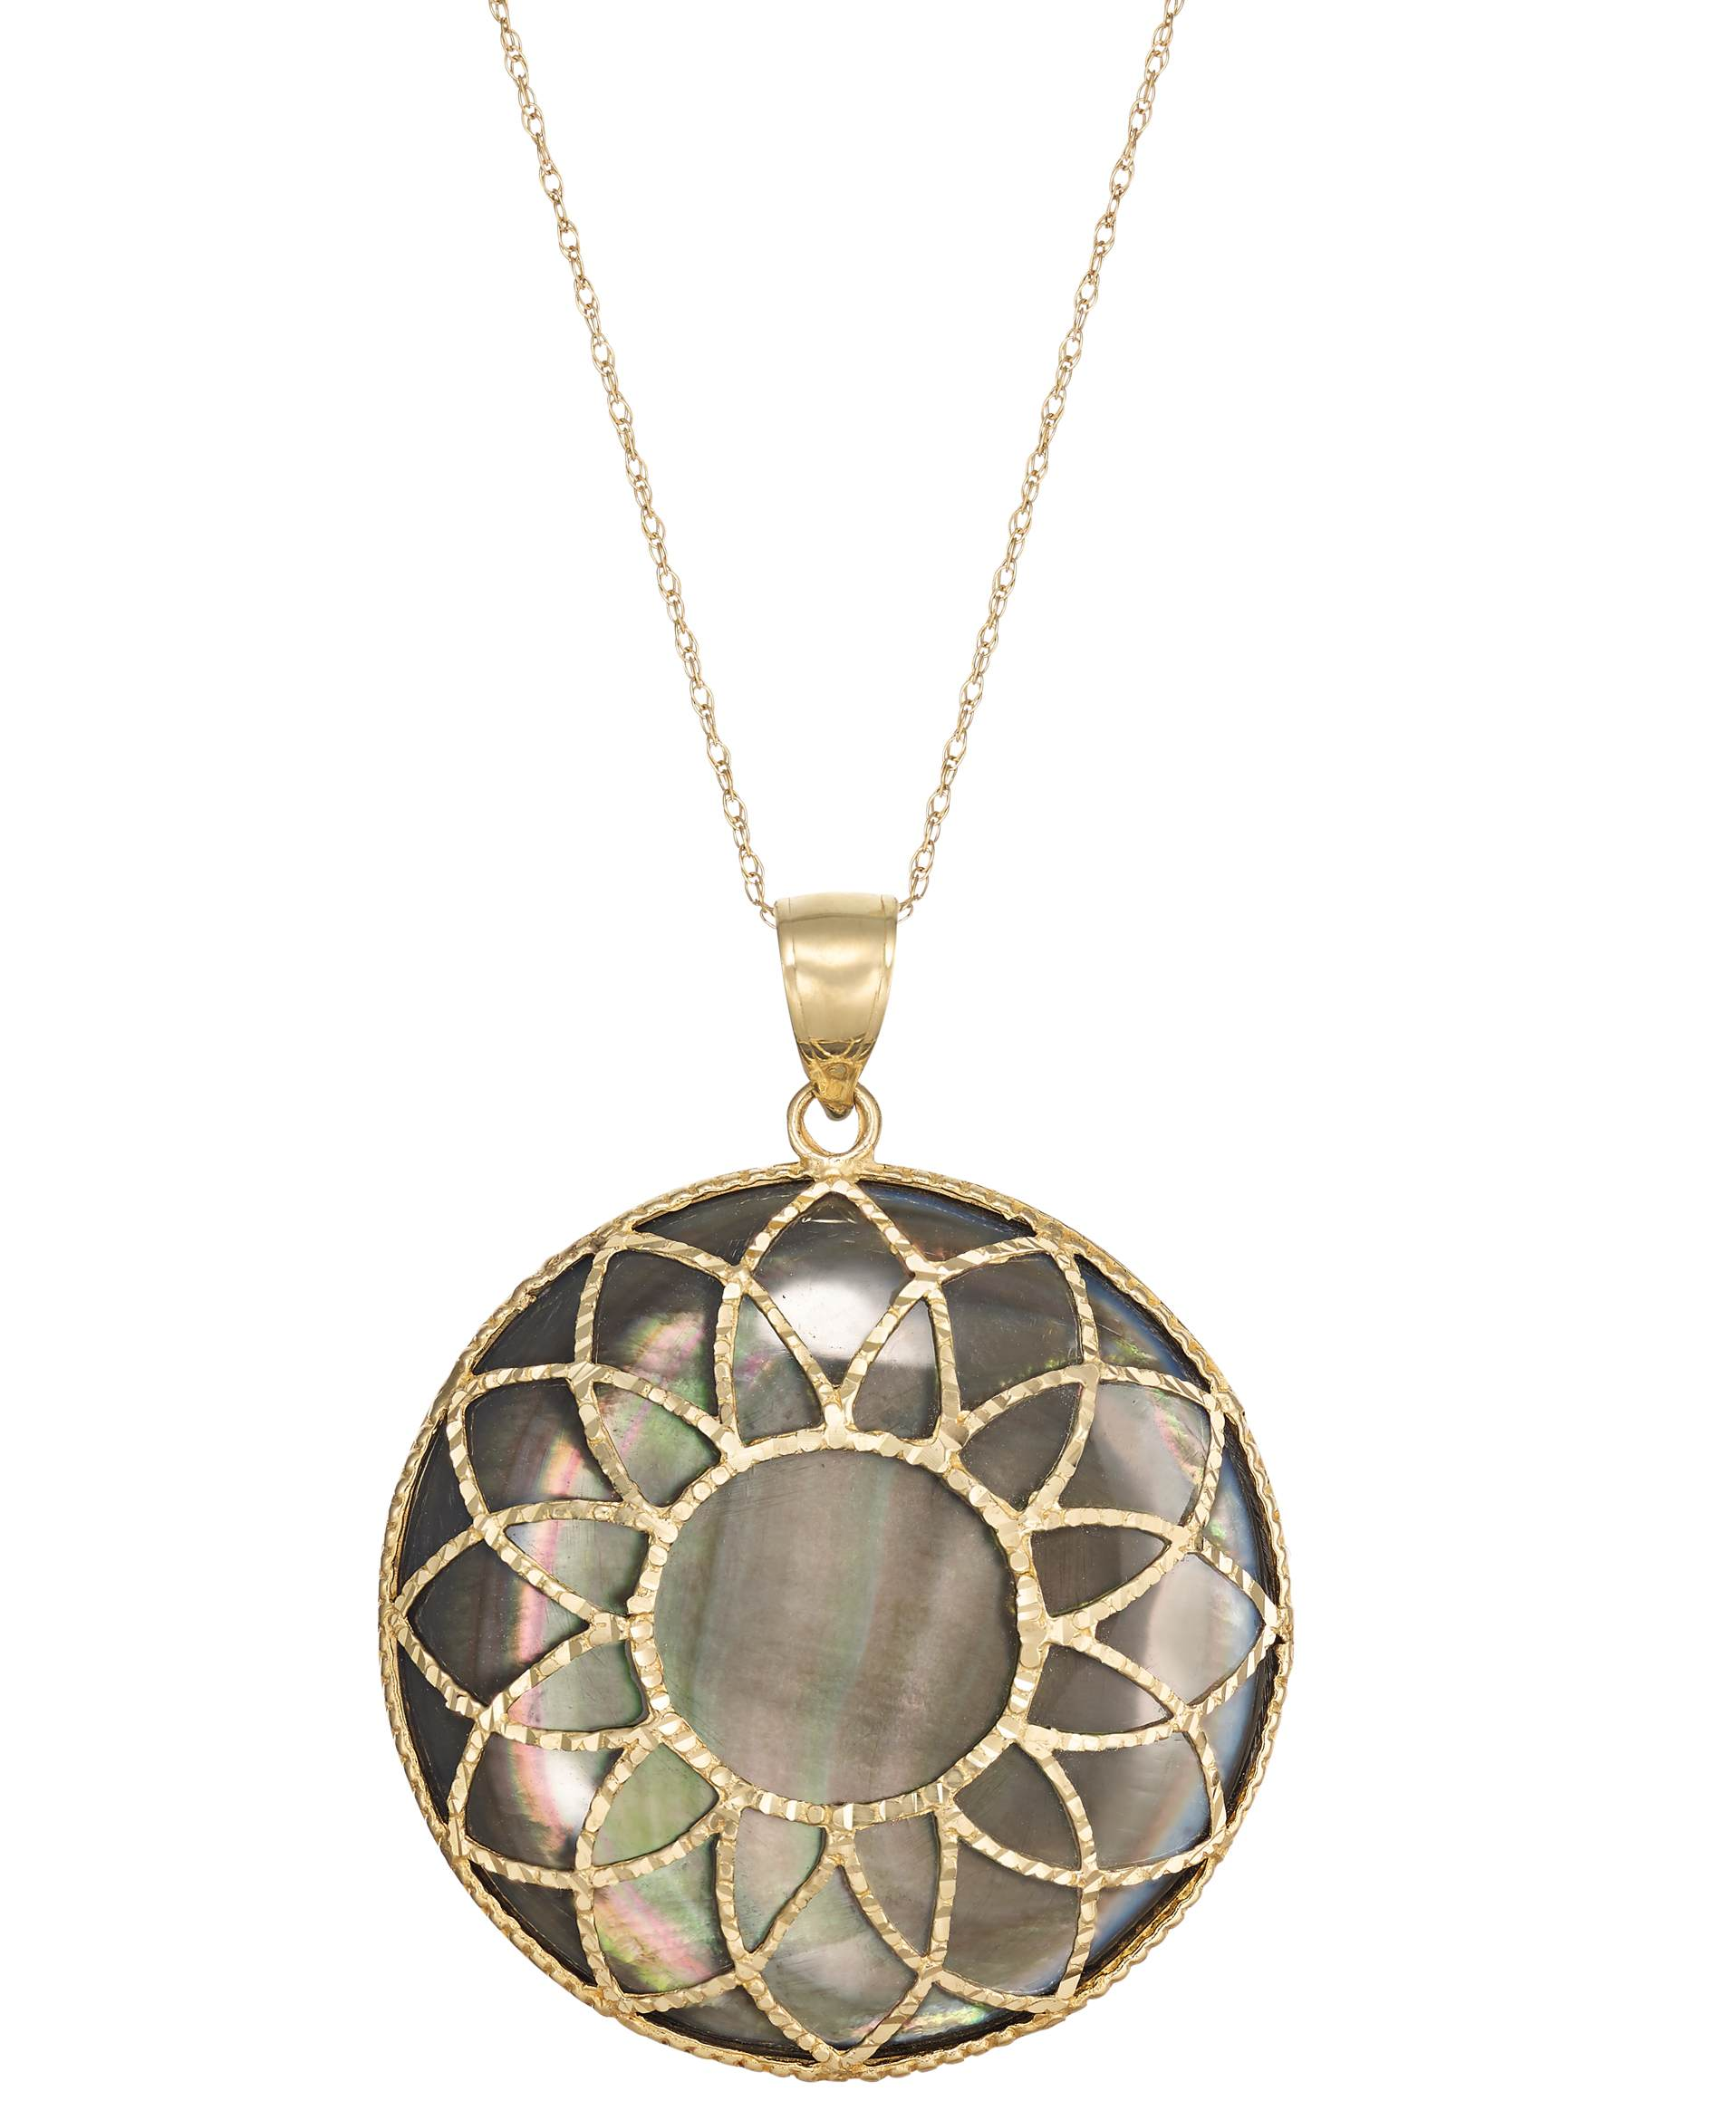 necklace_opal_necklacespicture.jpg